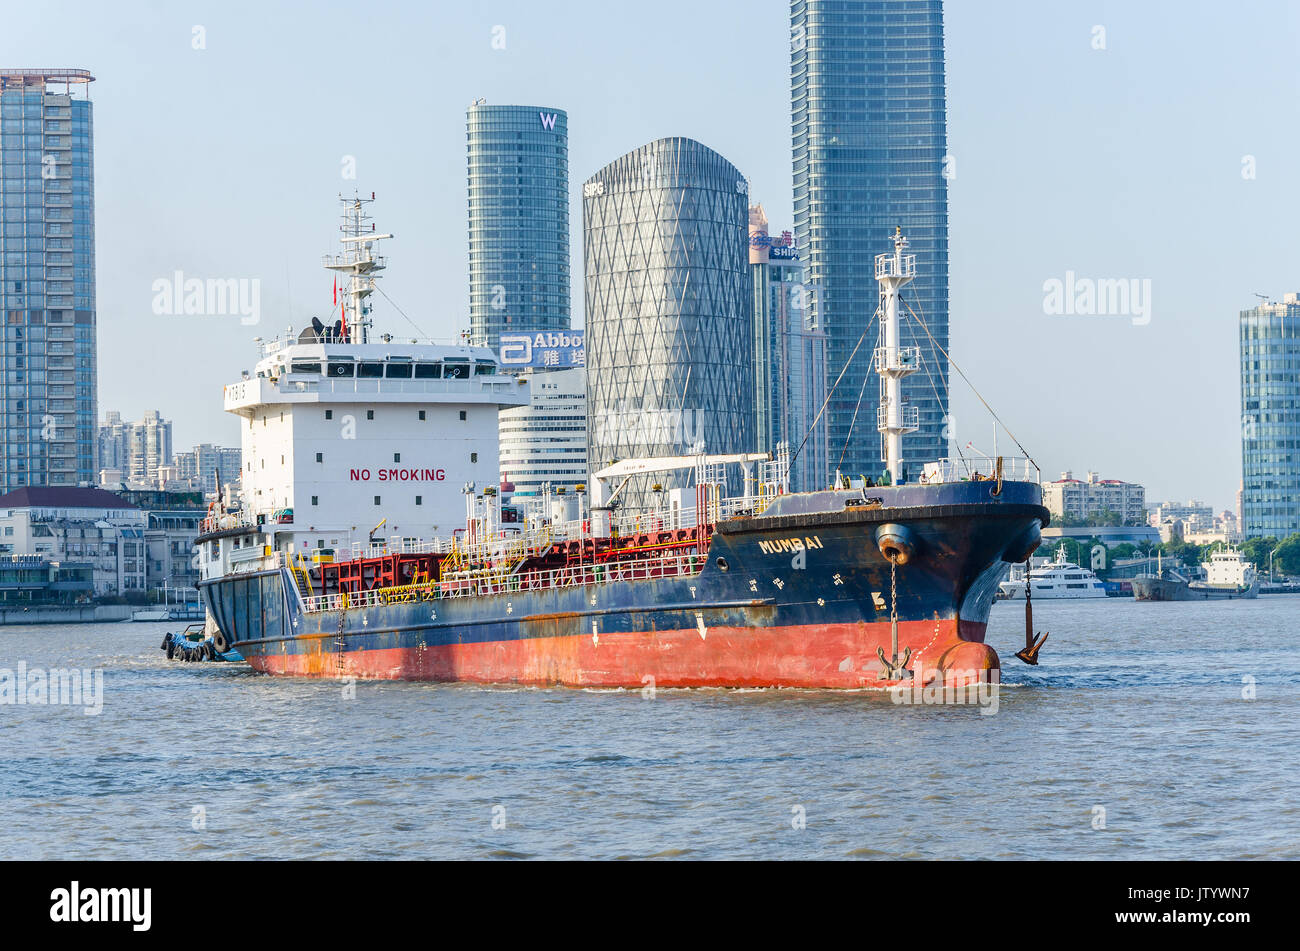 A cargo vessel registered in Mumbai, India travels up the Huangpu River in Shanghai, China. Stock Photo